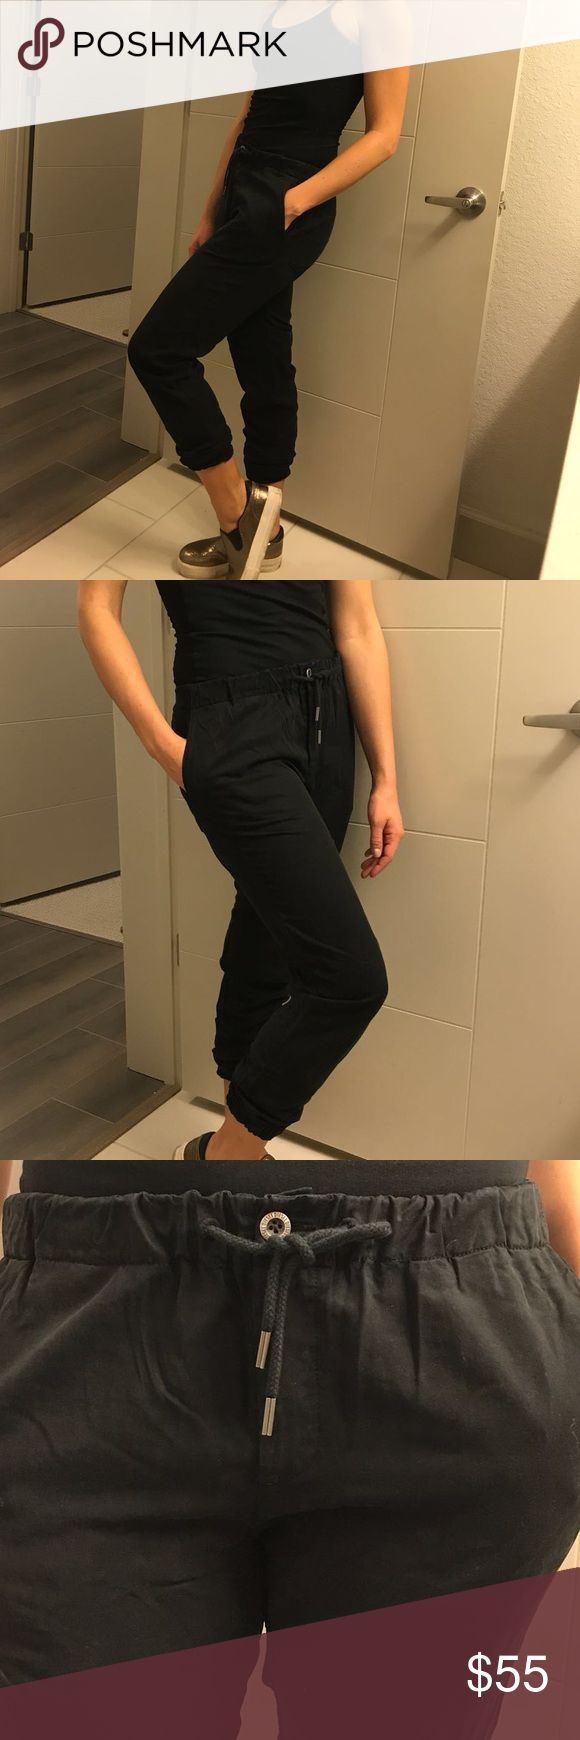 Black pence! Diesel!!! Chic comfy trousers Diesel Pants Trousers